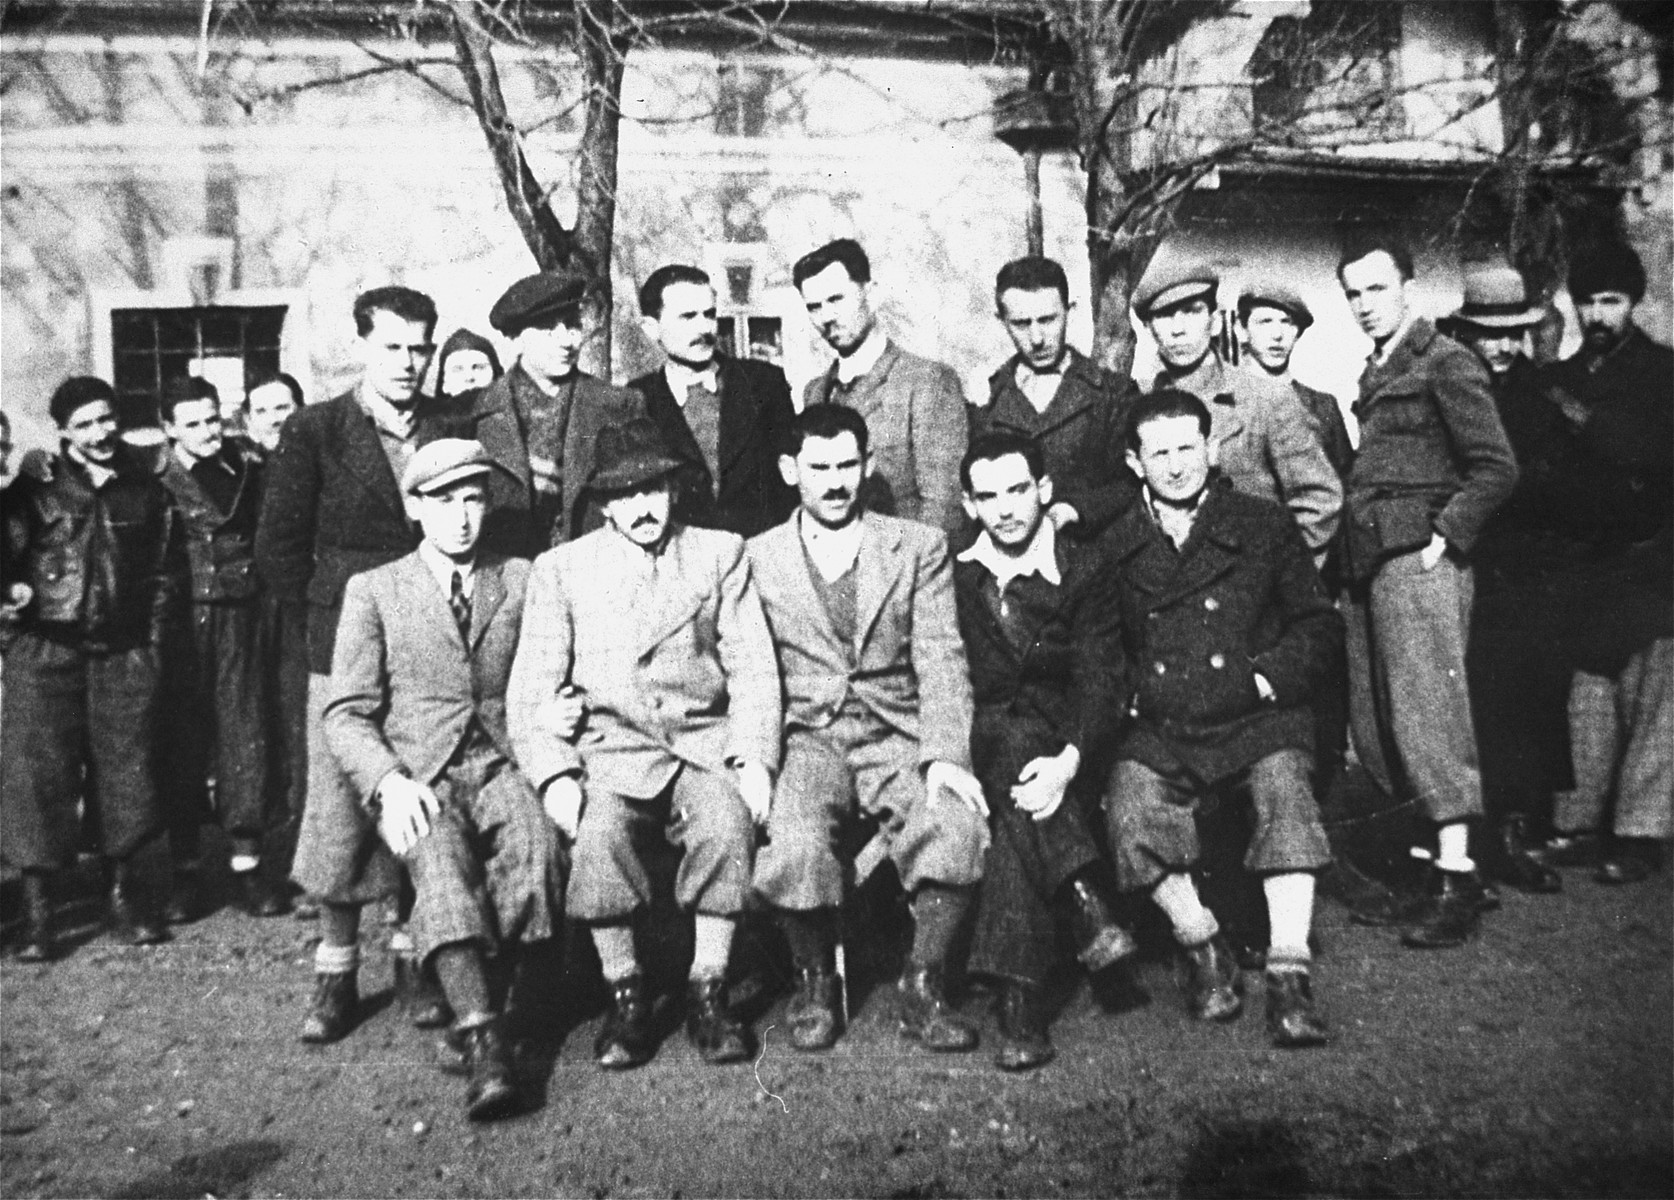 Romanians from Cehu Silvaniei (Jud. Salaj) interned in the Gorony camp in Hungary.